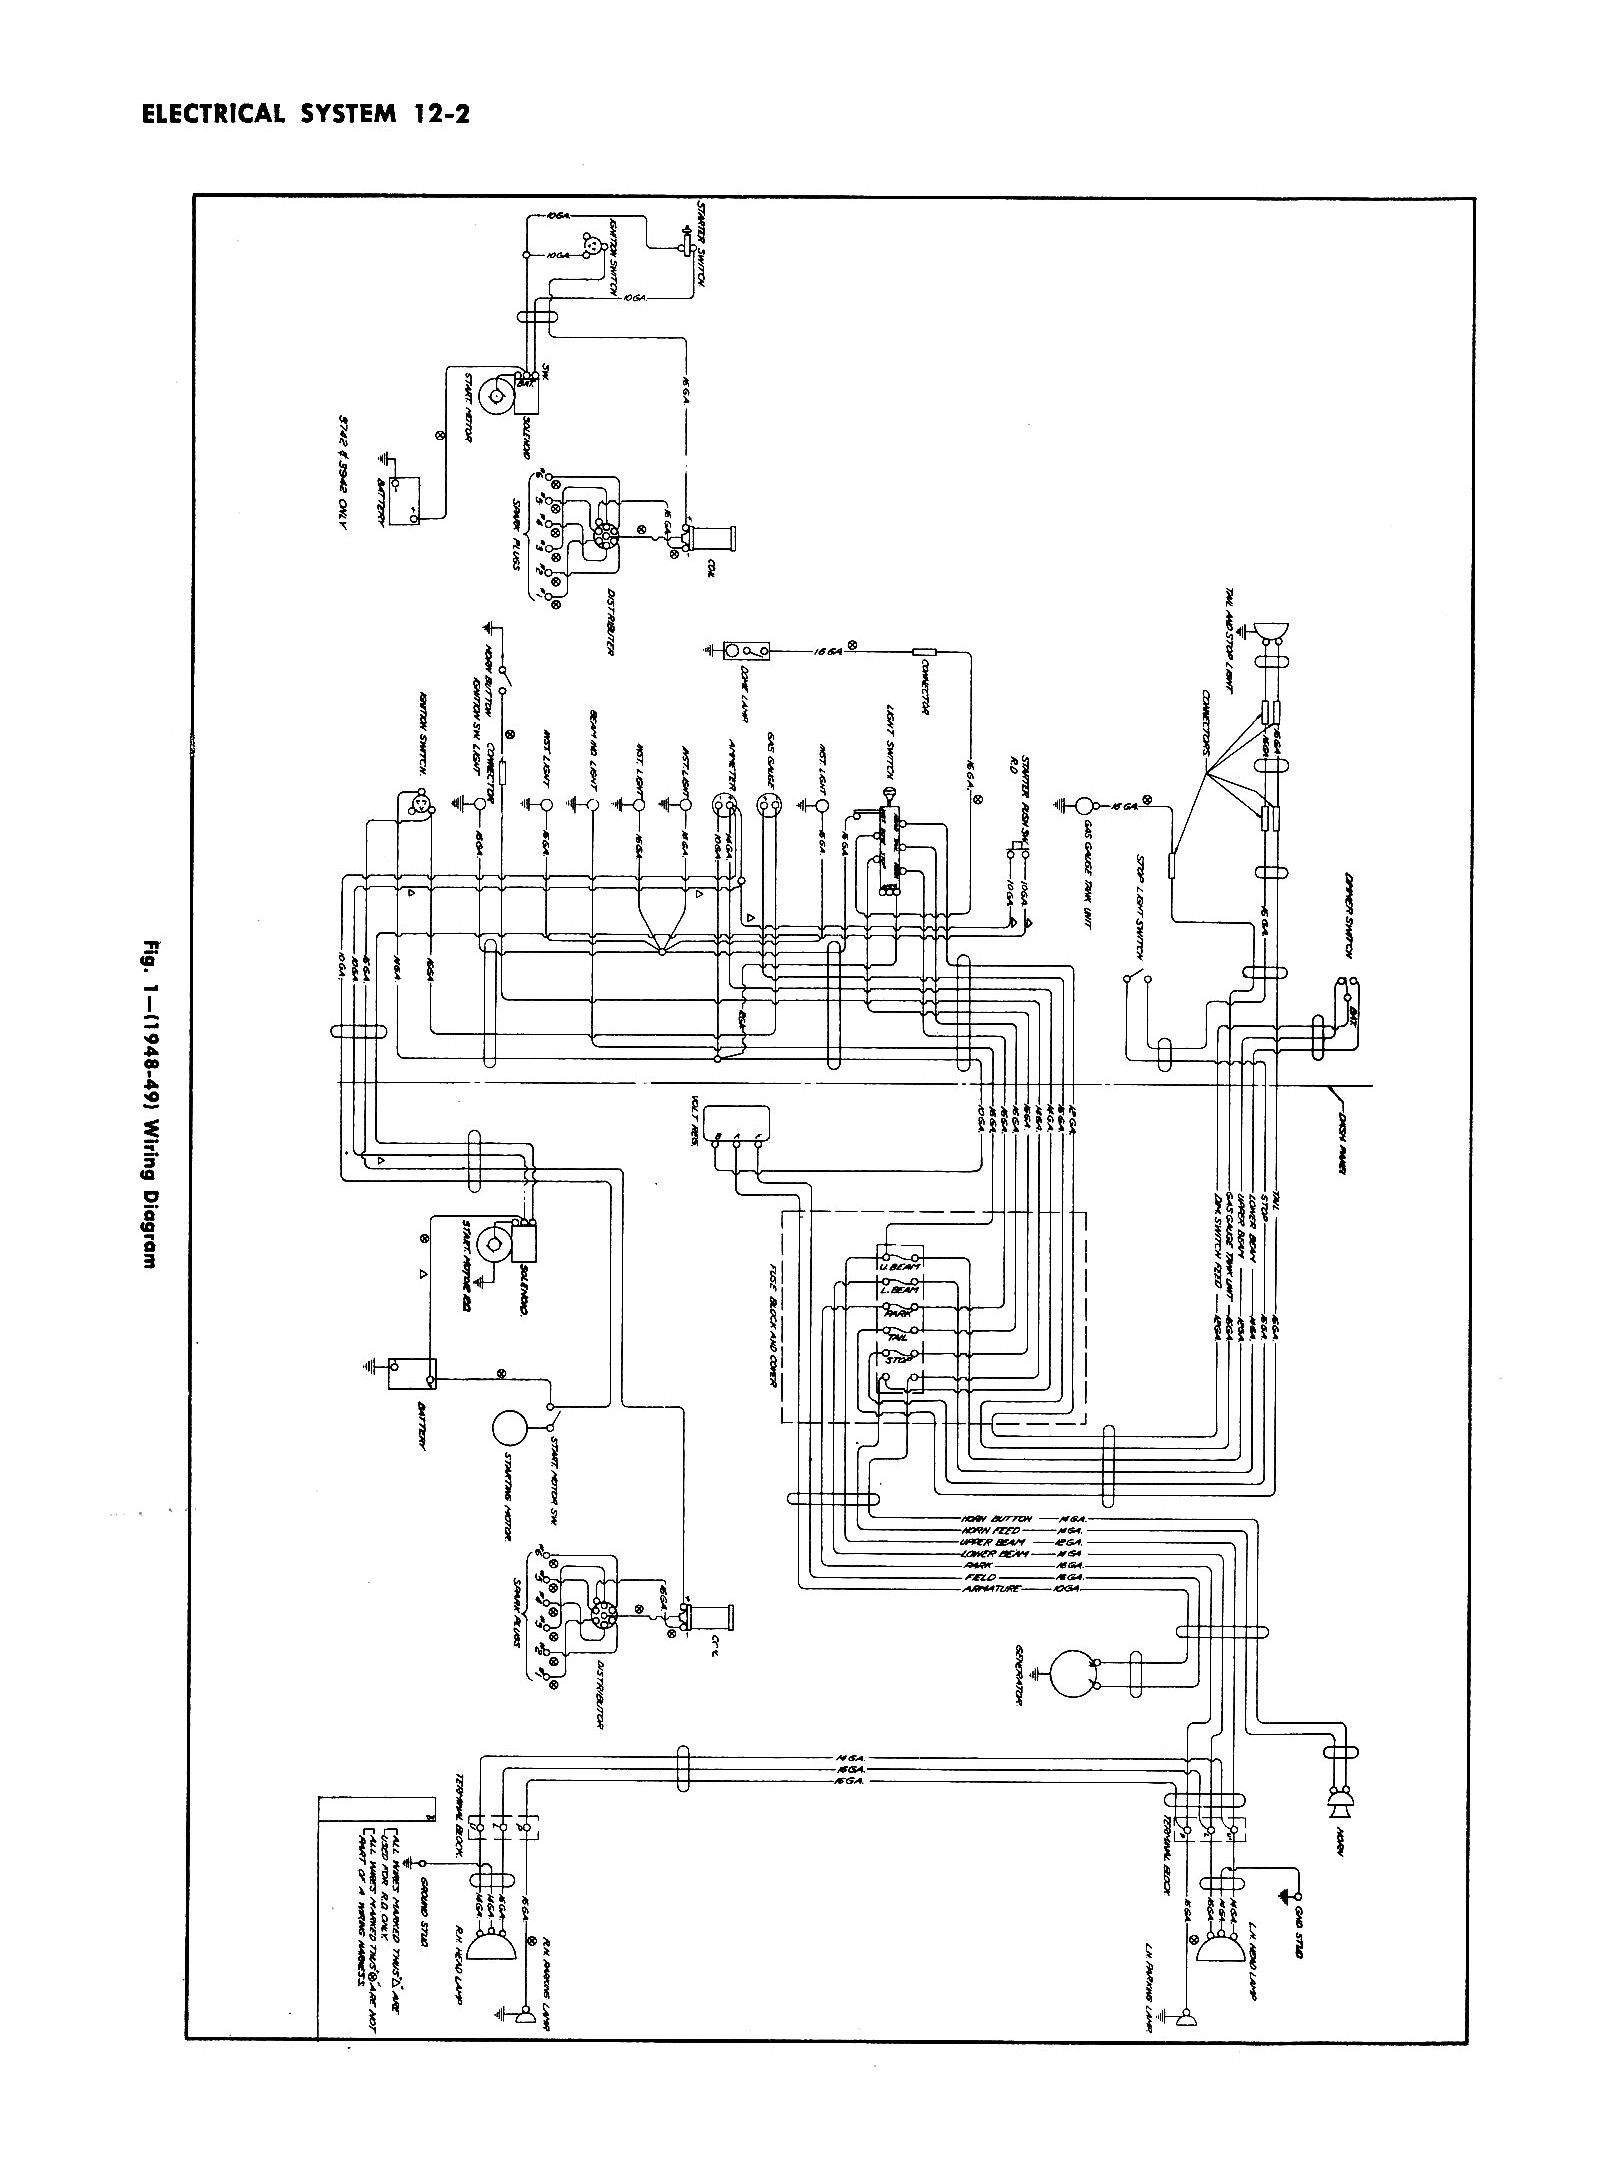 Chevy Truck Engine Wiring Diagram Archive Of Automotive 1948 Chevrolet Schematics Rh Thyl Co Uk 1972 1992